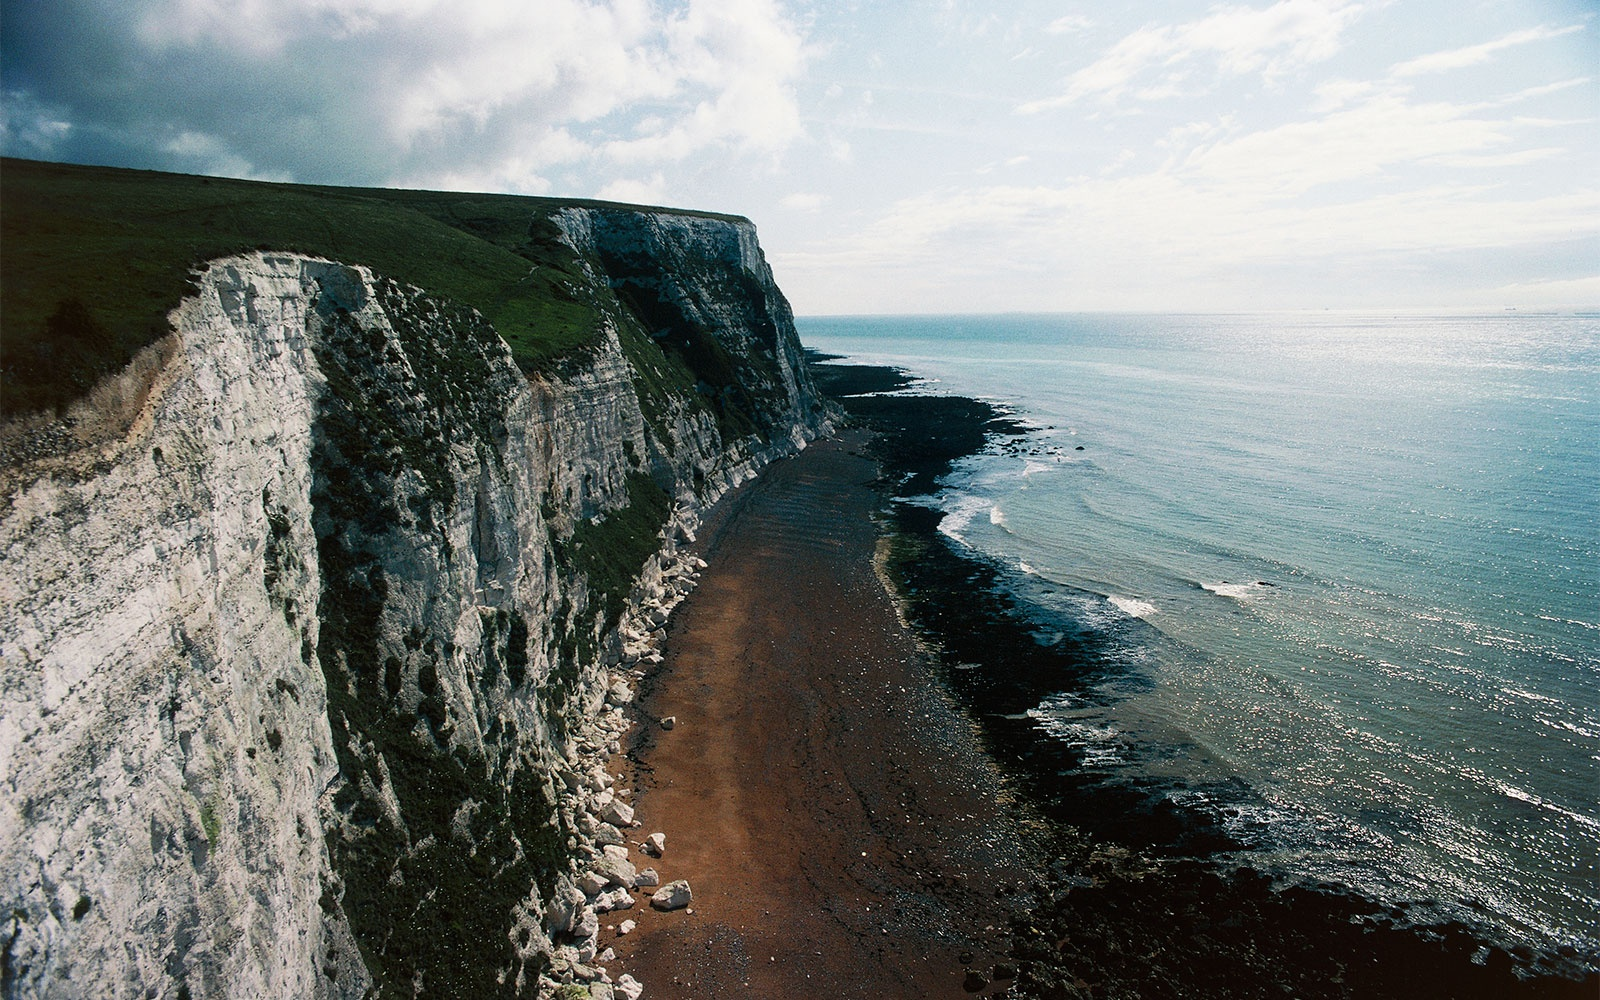 WWIITUNNELS0715-white-cliffs-of-dover.jpg